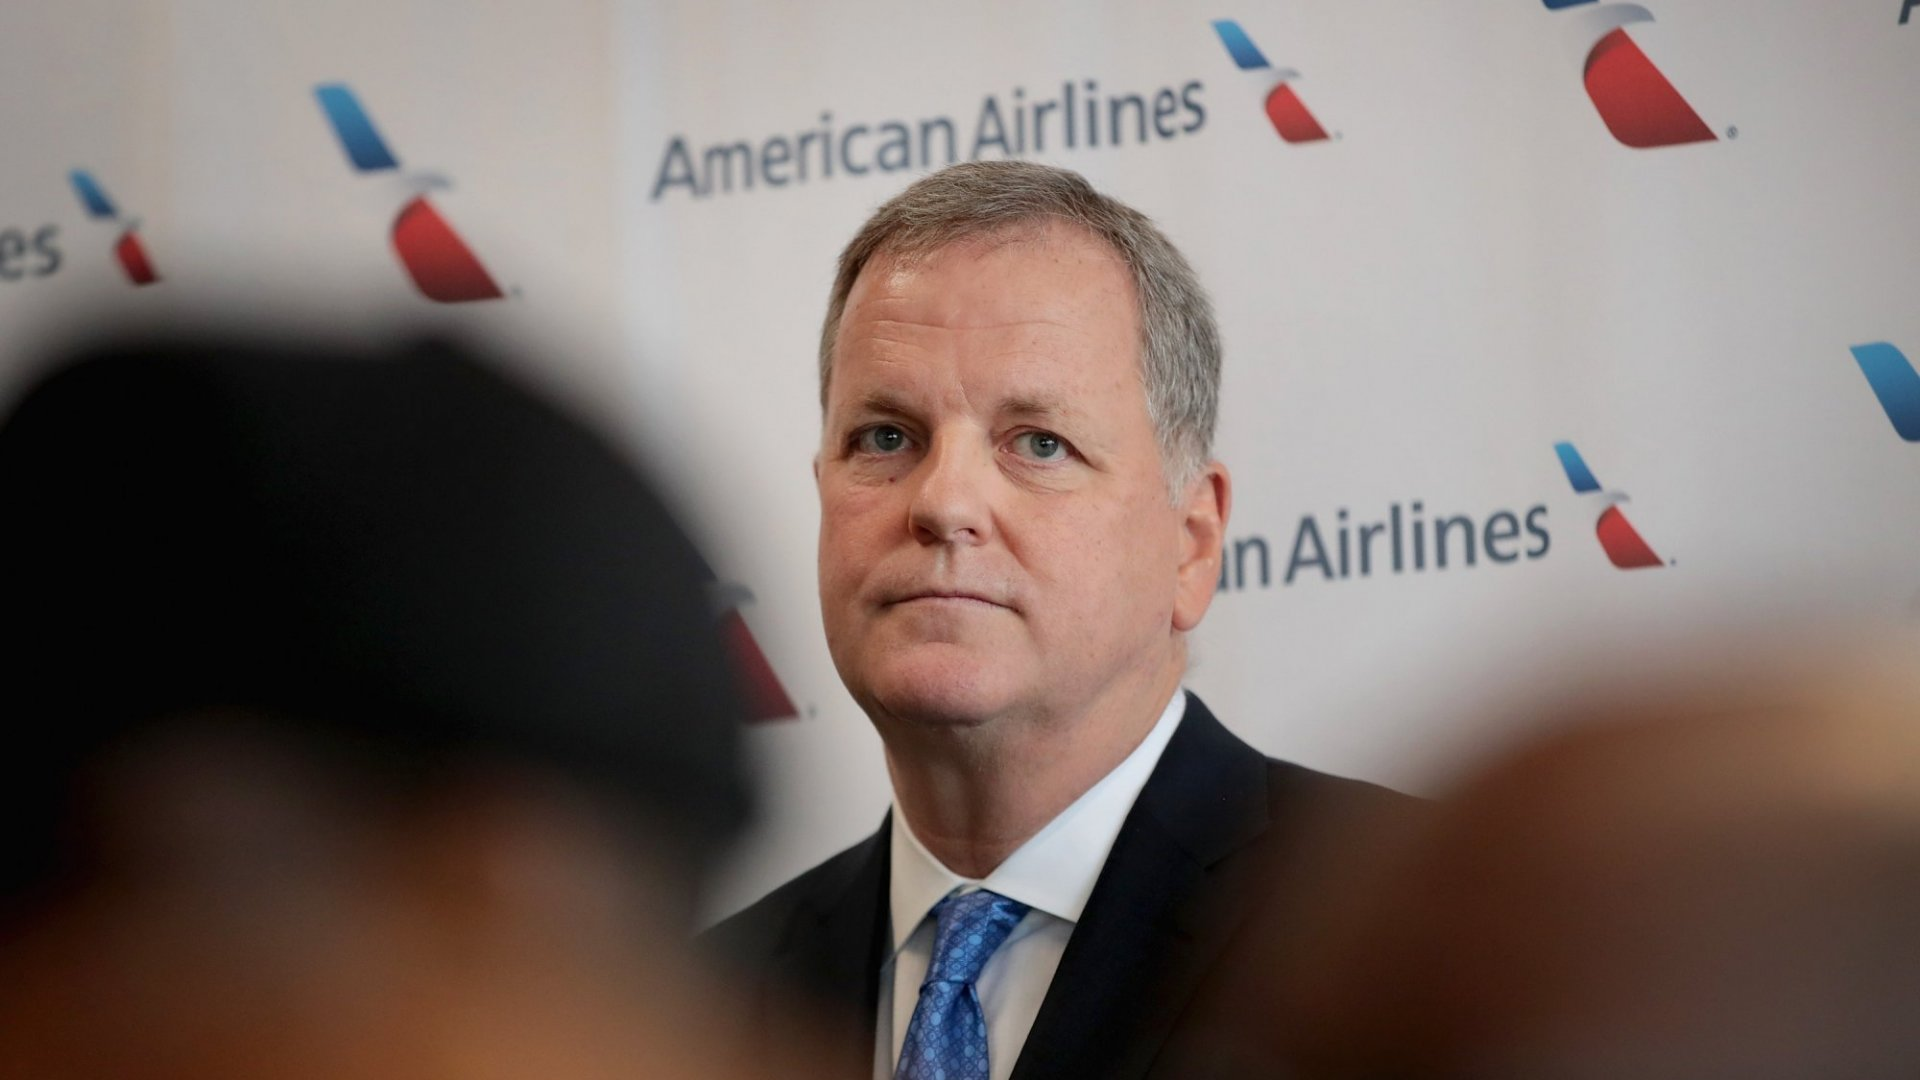 American Airlines CEO Doug Parker says he wants to listen to employees.